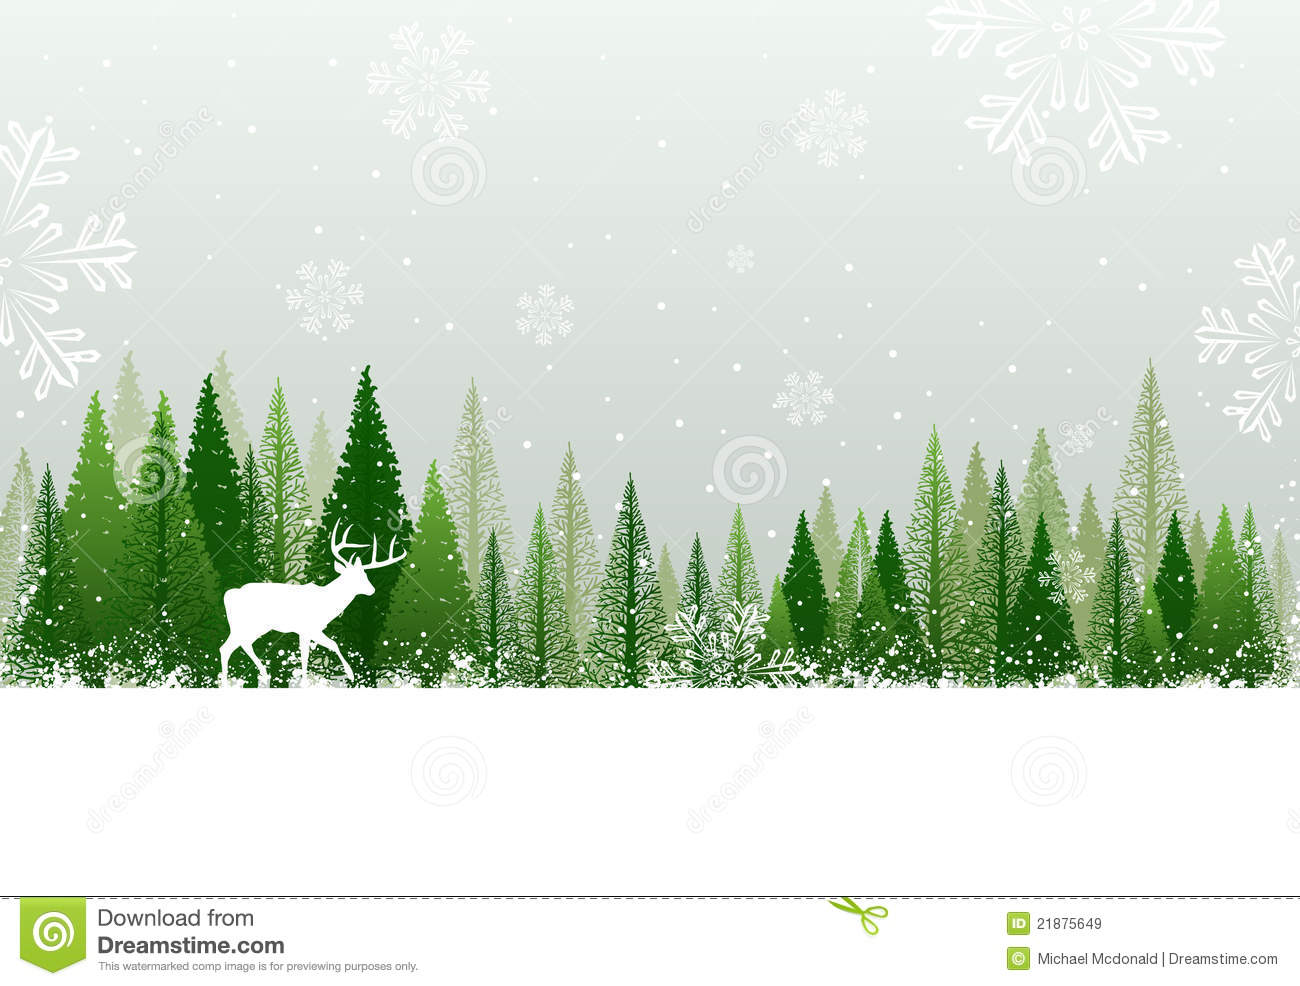 hight resolution of snowy winter forest background